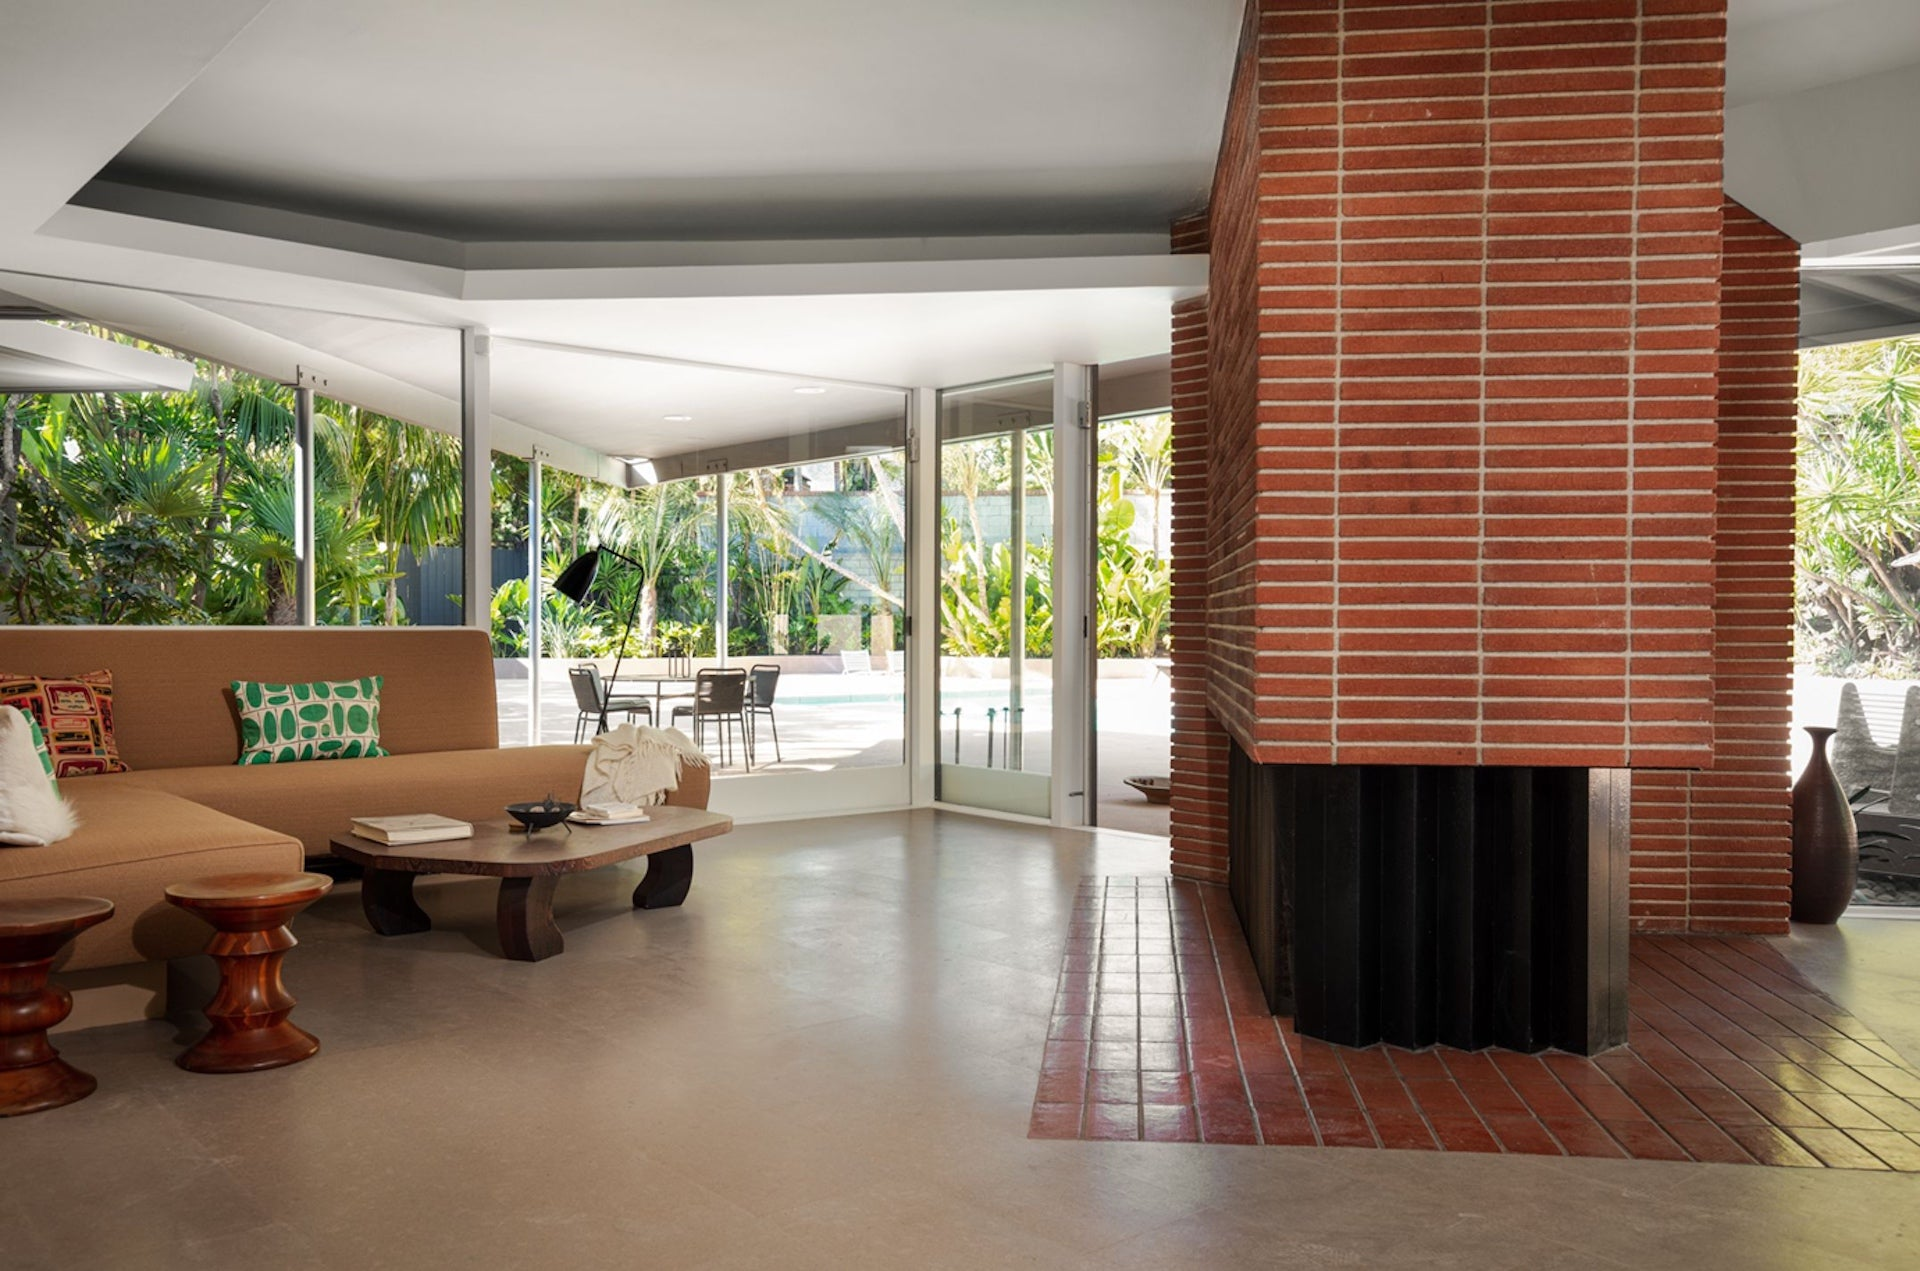 Nordlinger House #1 by A. Quincy Jones (1948), interior. Photo © BoydDesign